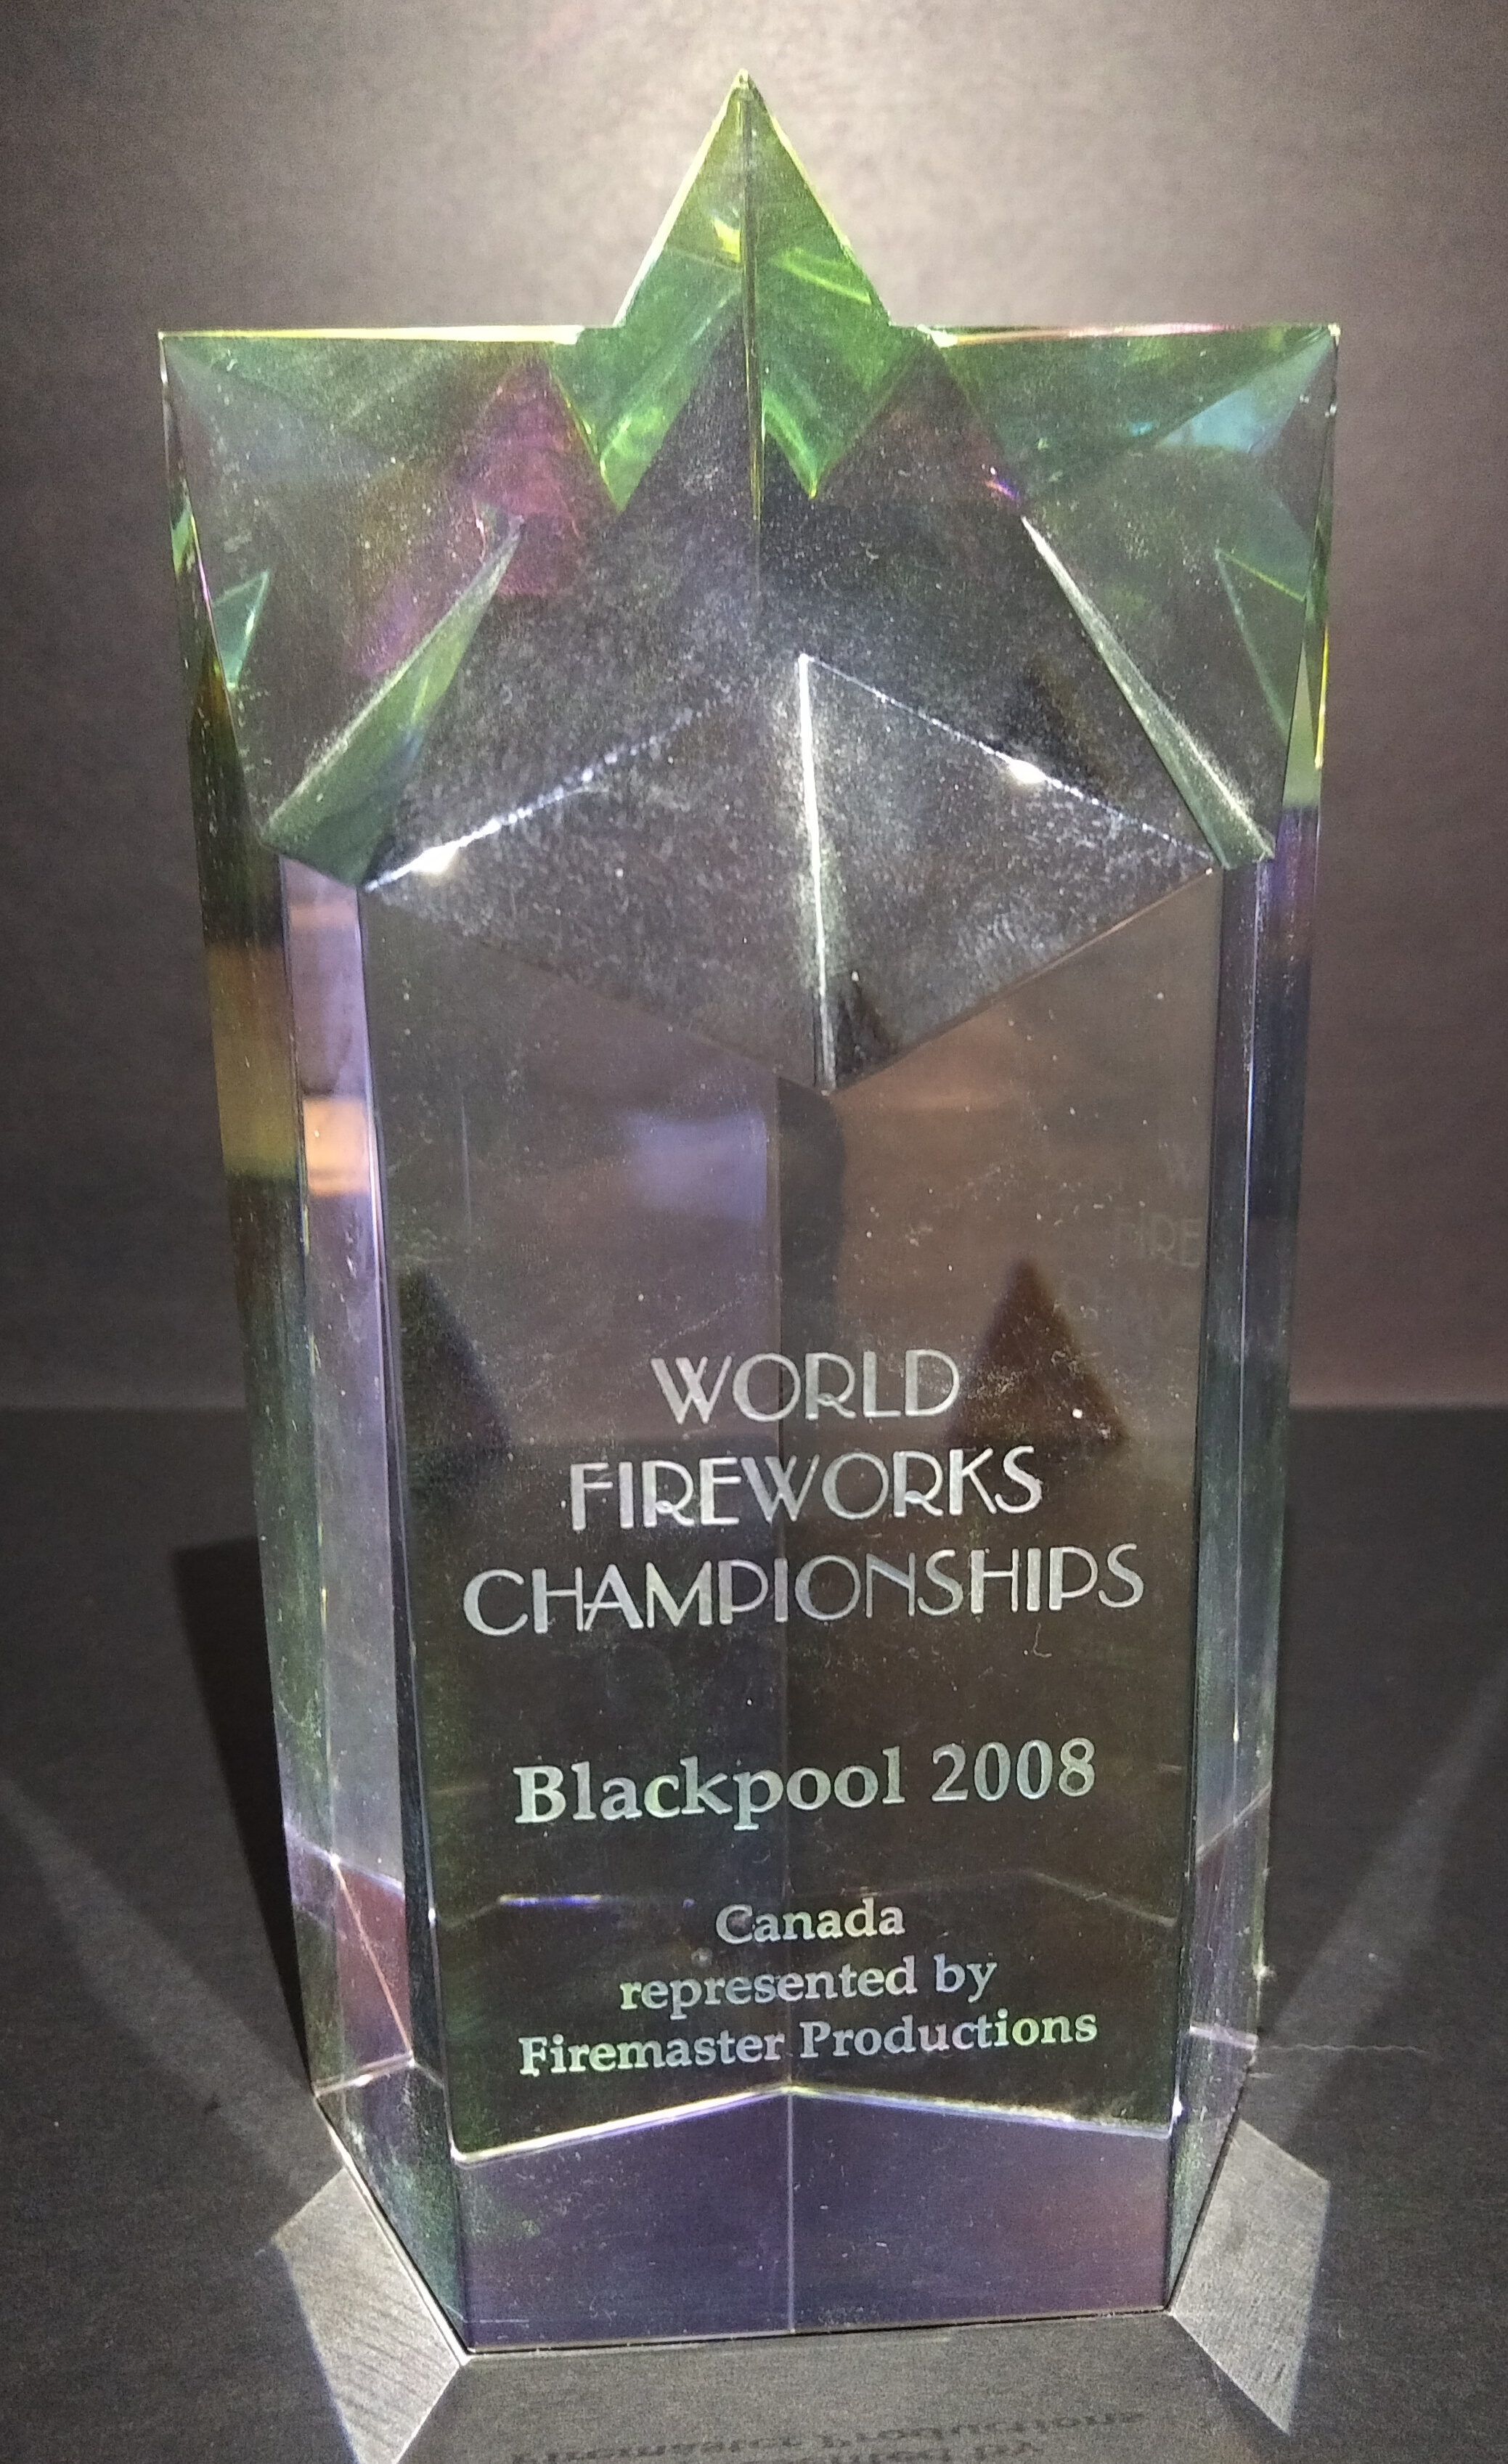 2008 Blackpool World Fireworks Championships - Our first international fireworks competition resulted in a second place finish in Blackpool for the World Fireworks Championships.